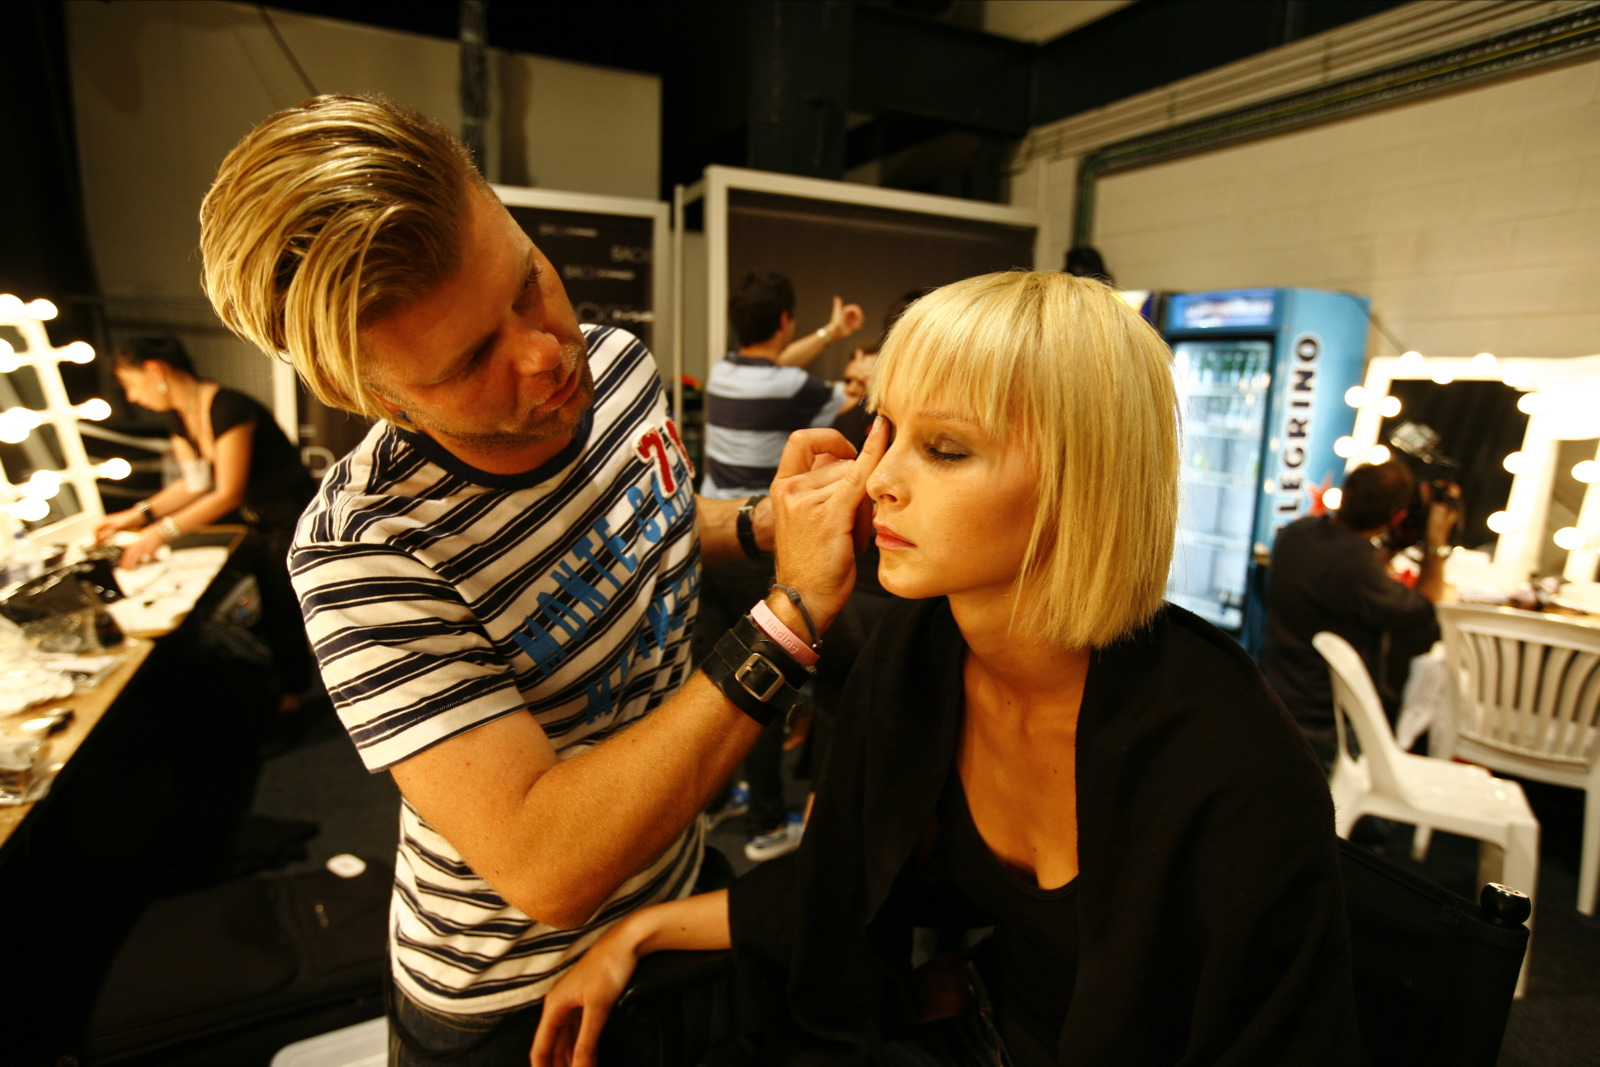 Makeup Artist Jobs in Film and Television